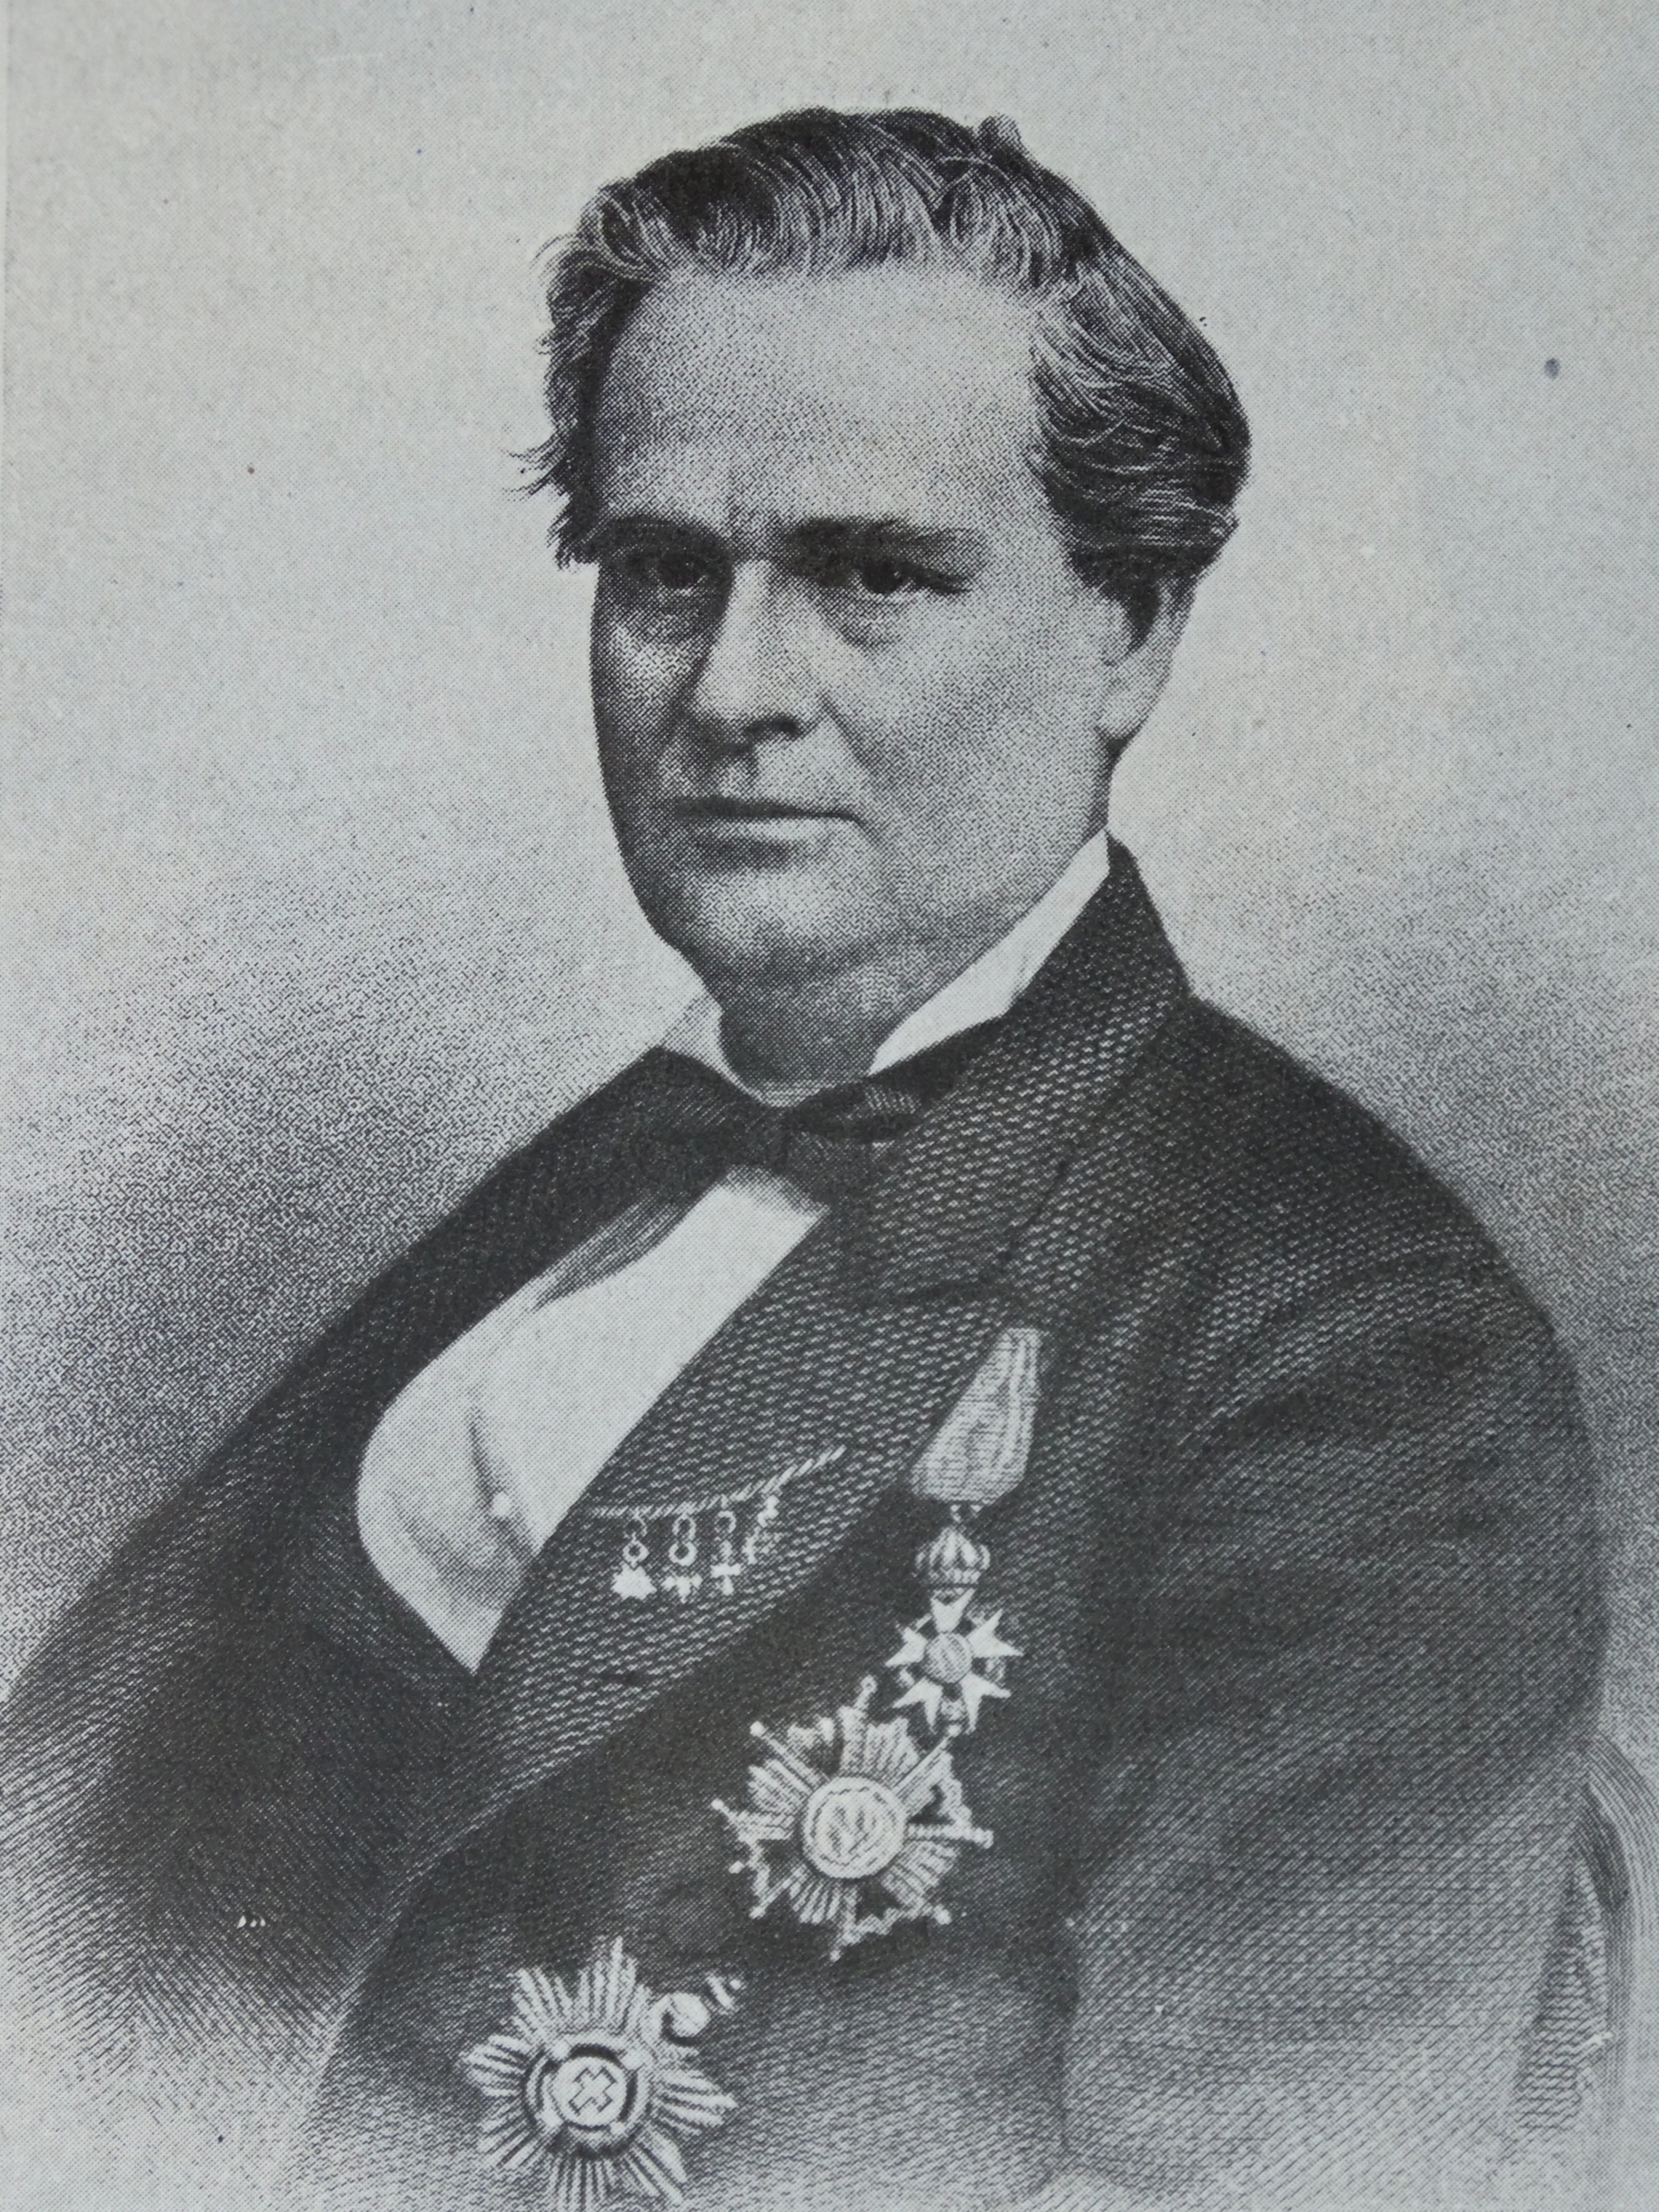 Portrait of J. Marion Sims, born James Marion Sims, a physician considered by some as the father of modern gynecology.